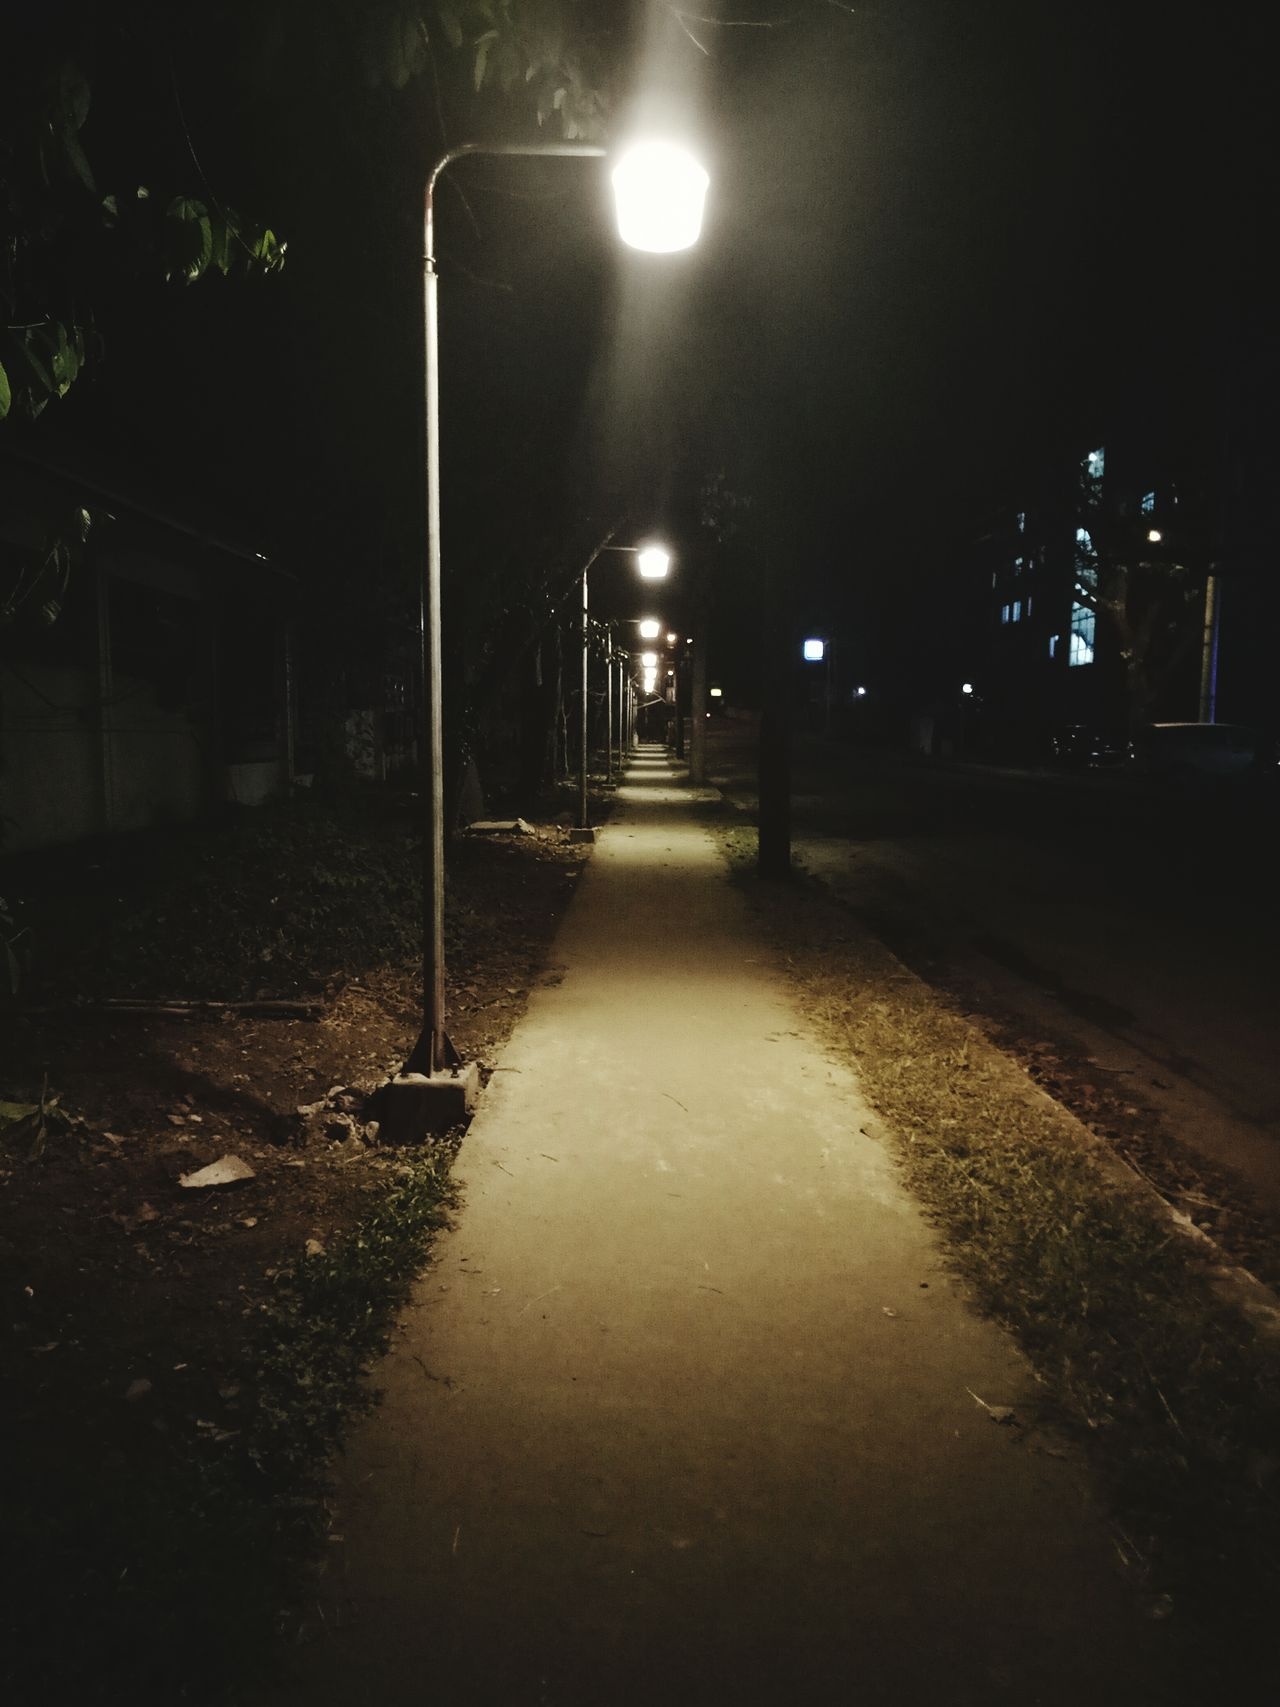 walking alone Night Illuminated Street Light Lighting Equipment No People Outdoors Tree Nature Sky Alone Night Life Quiet Quiet Night Lonely Road Road At Night Light